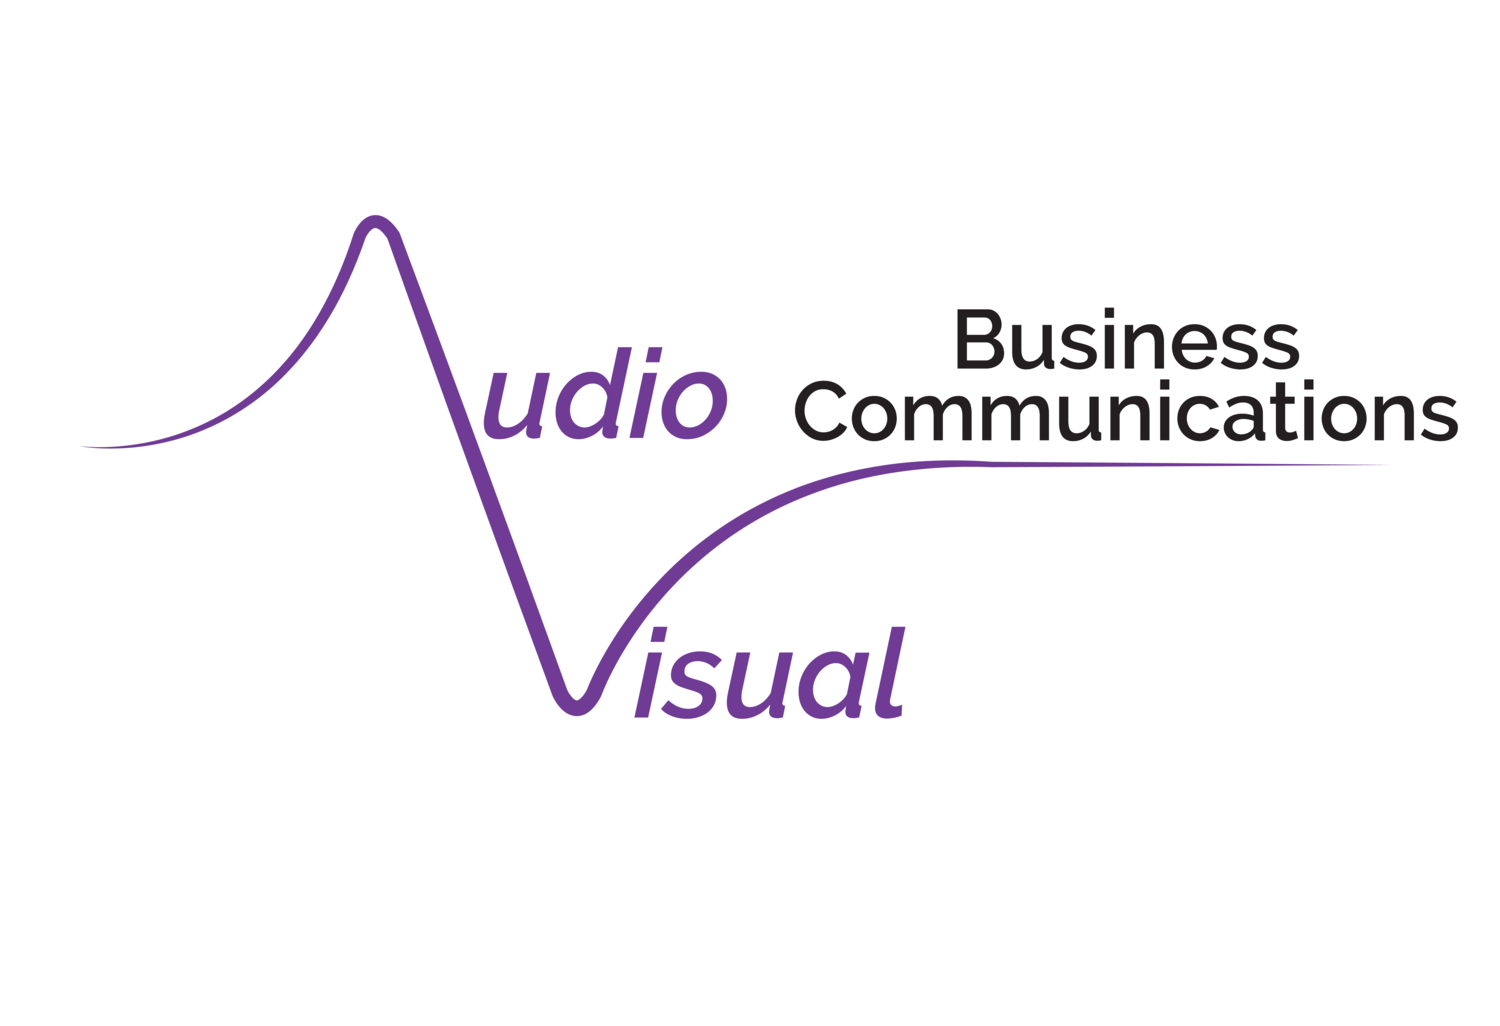 AV Business Communications